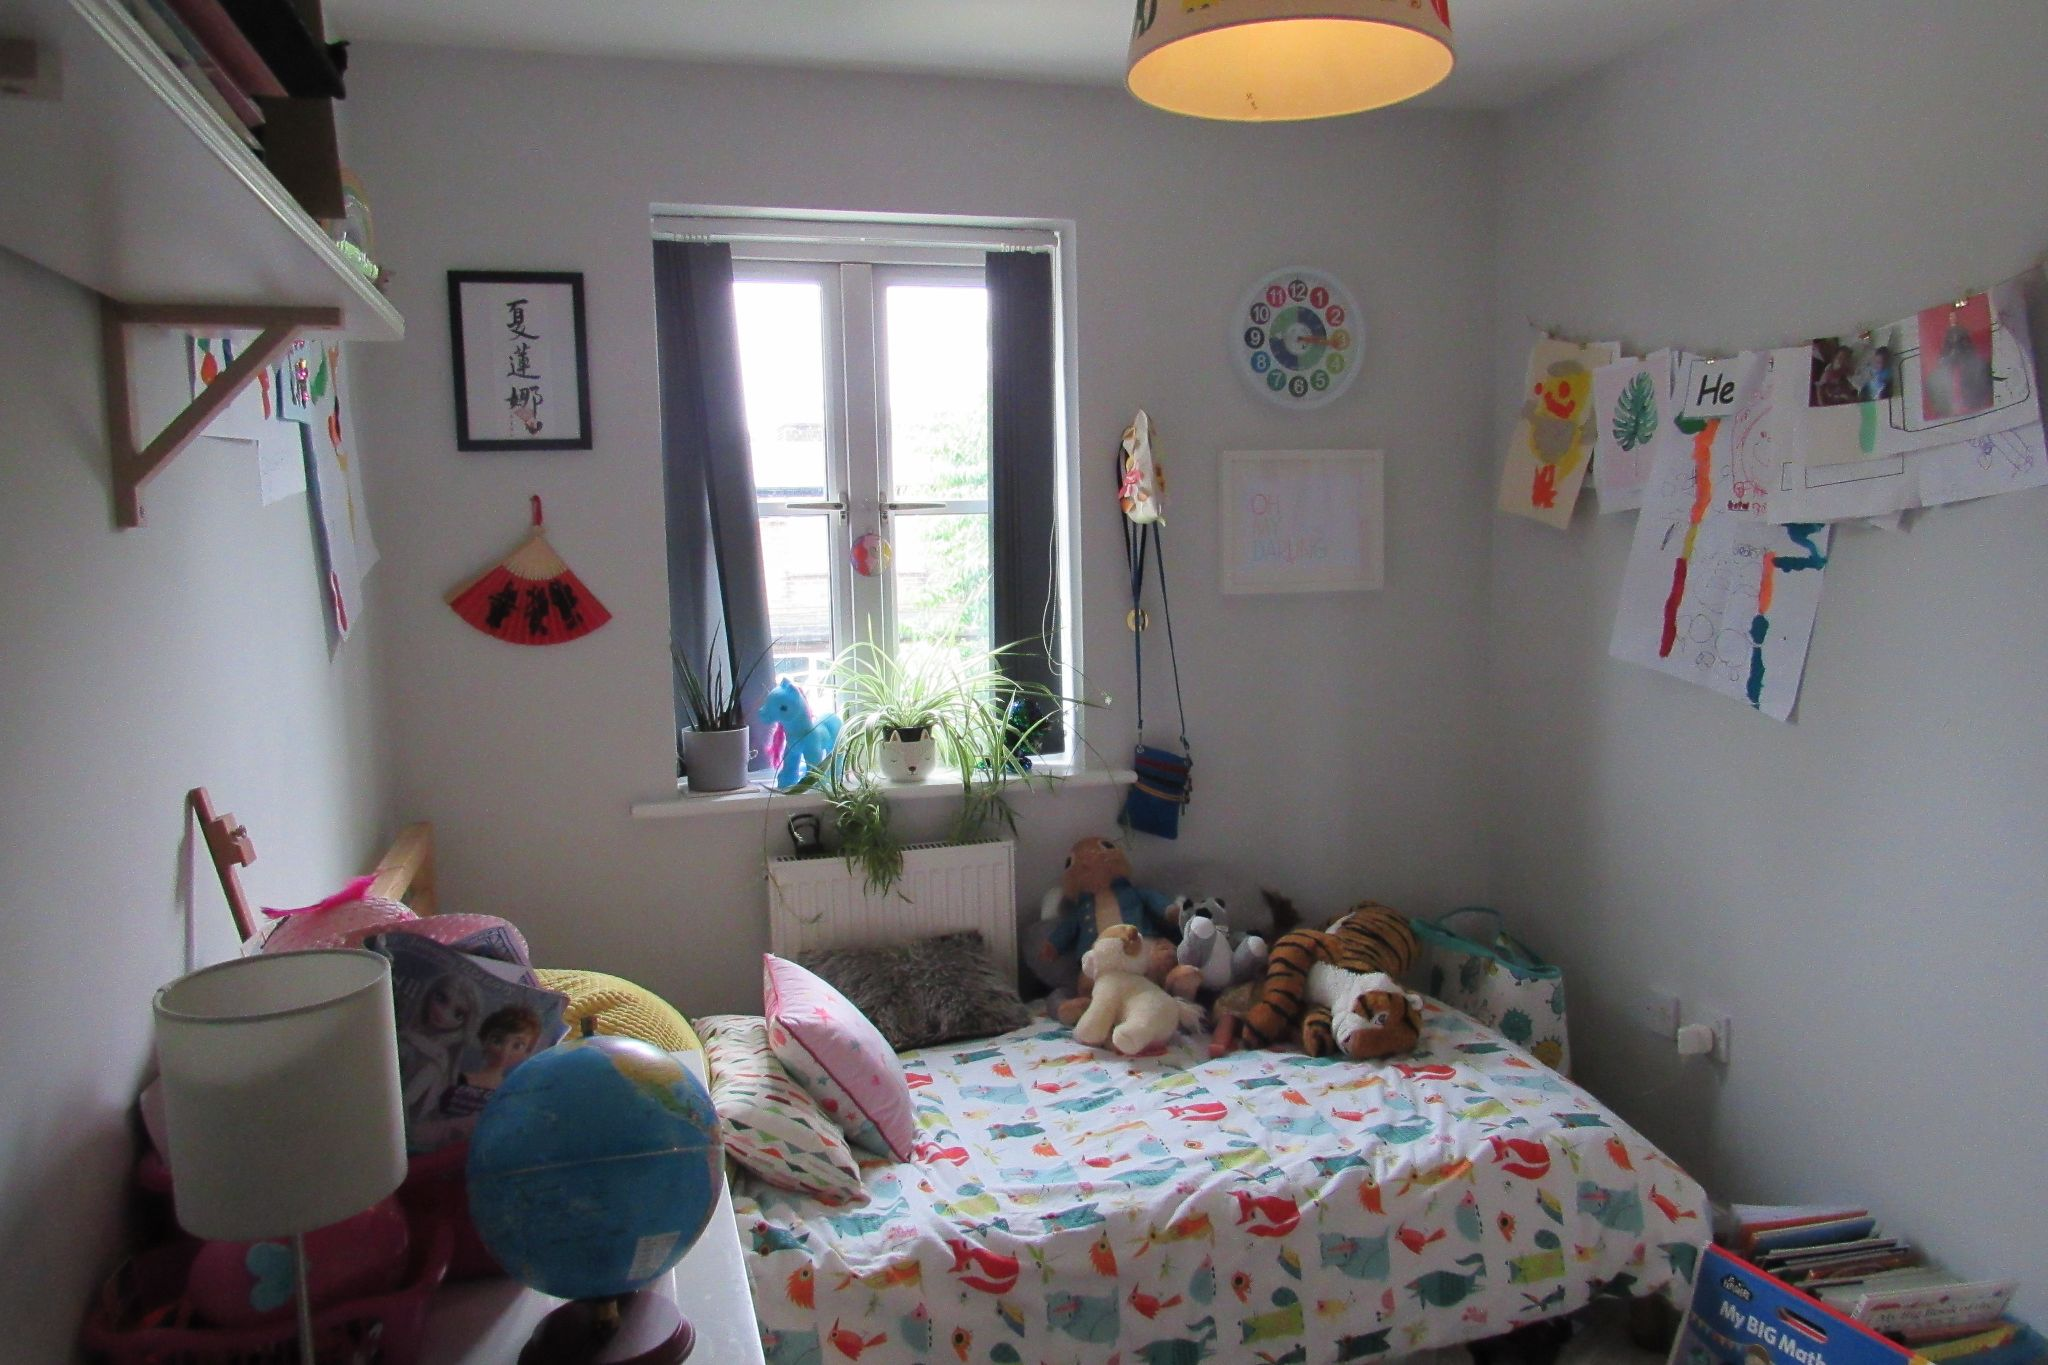 2 bedroom mid terraced house SSTC in Manchester - Photograph 12.